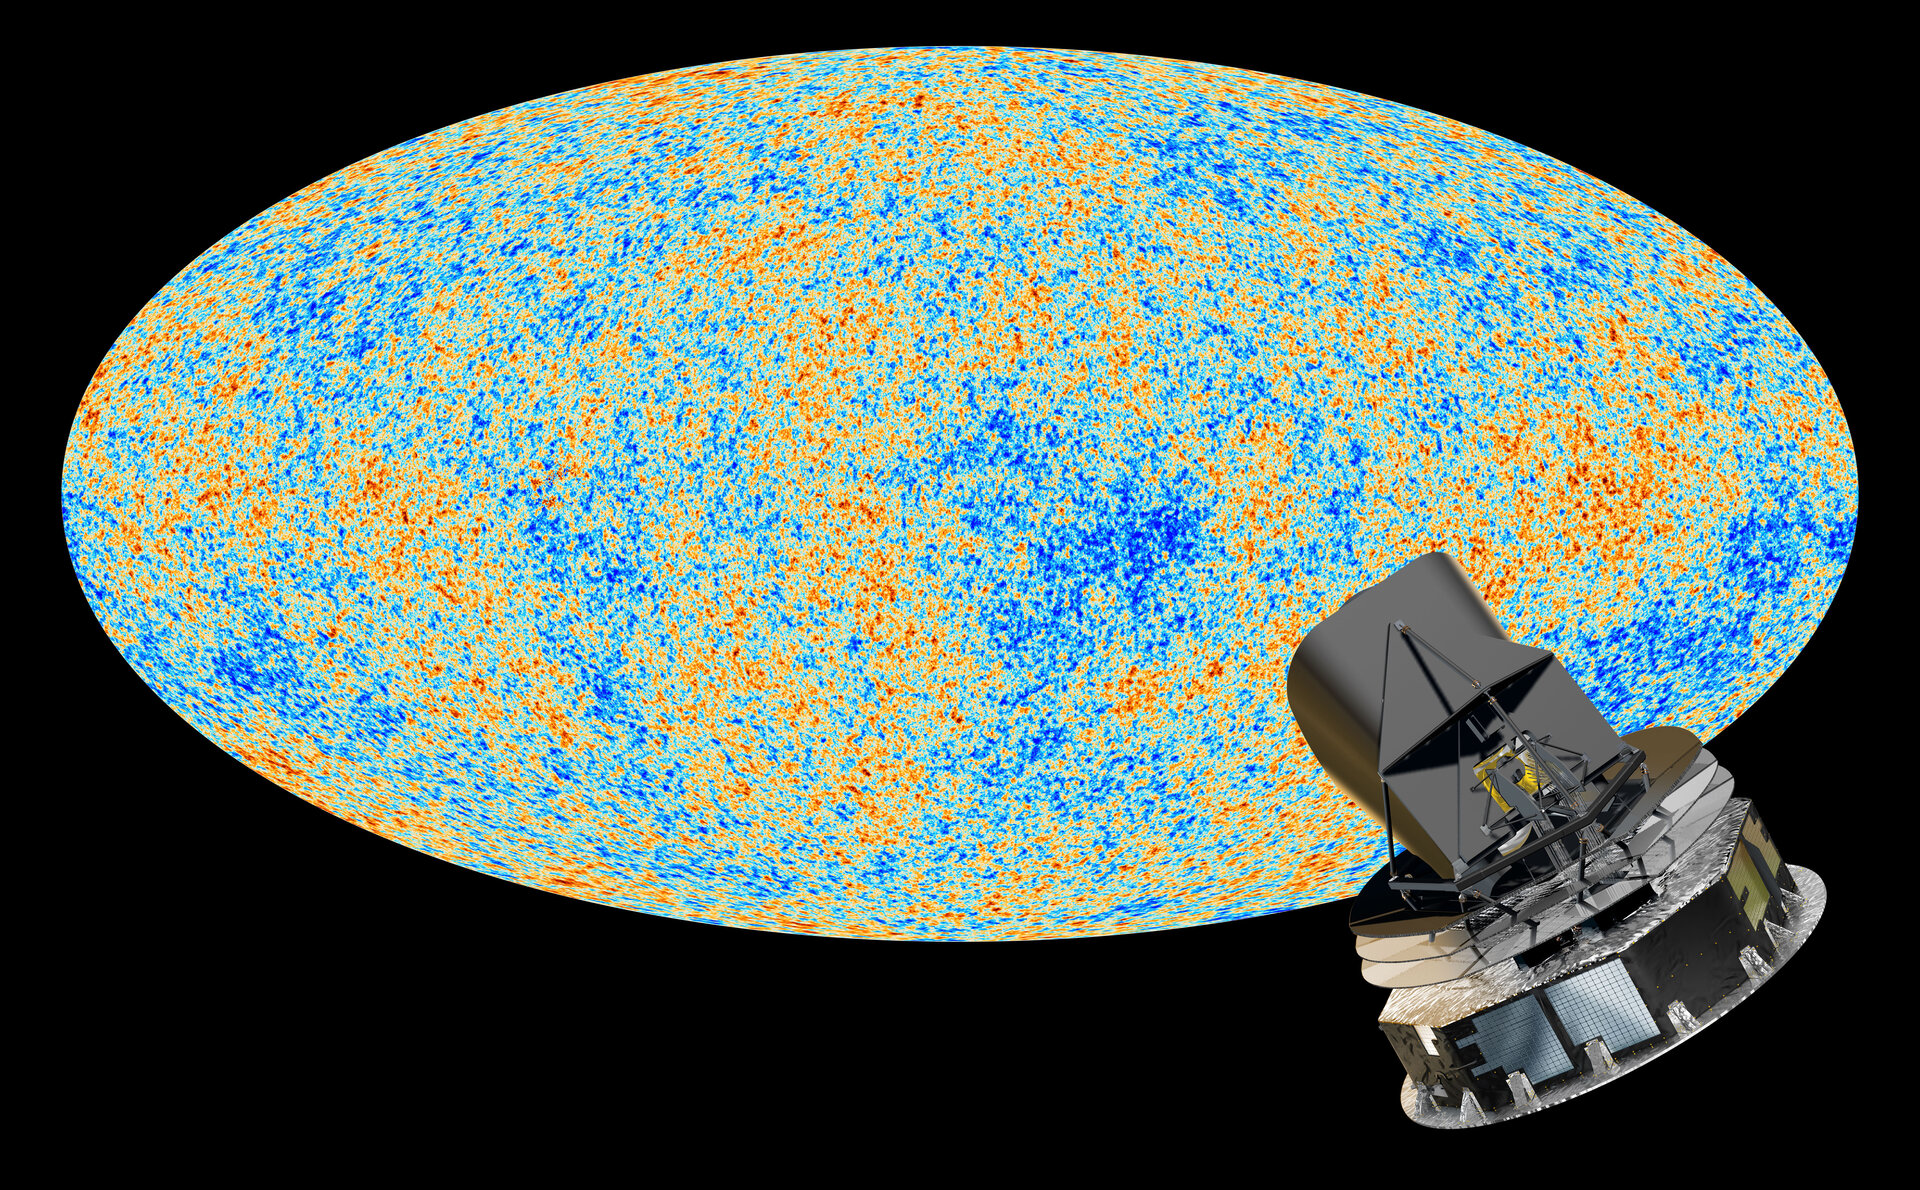 Planck and the cosmic microwave background